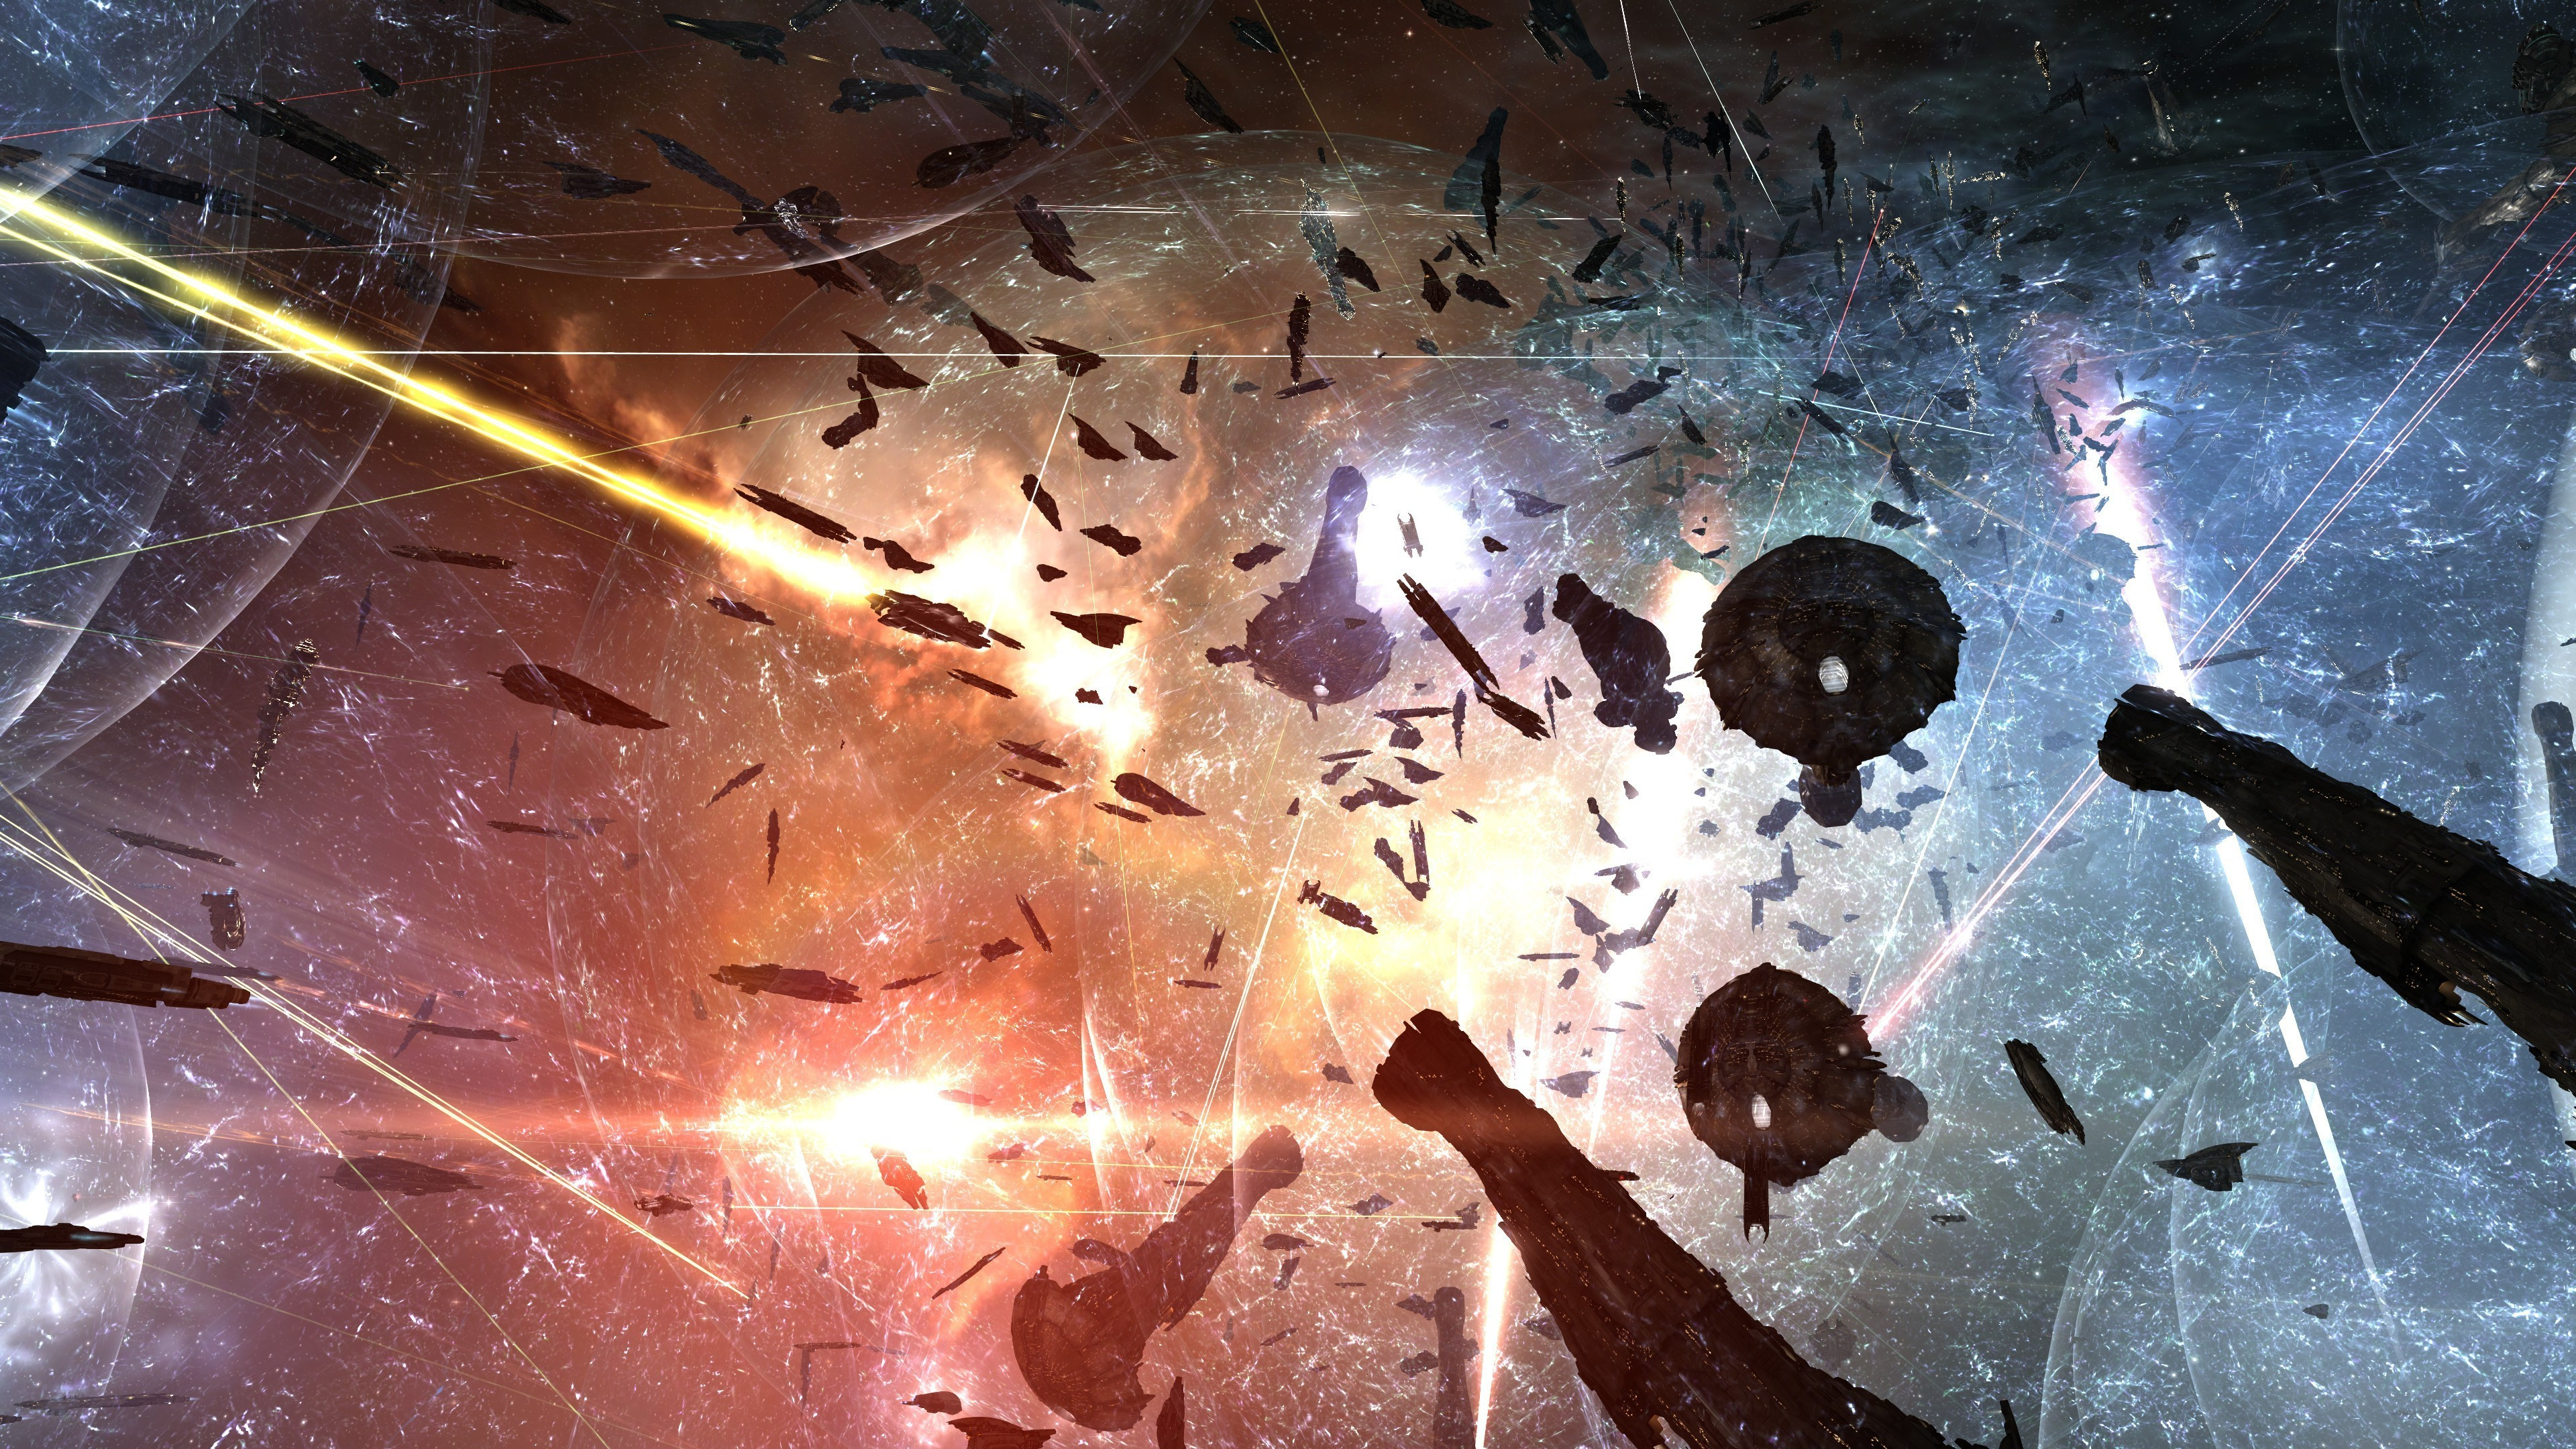 Res: 3840x2160, EVE Online, Spaceship, Space Battle Wallpapers HD / Desktop and Mobile  Backgrounds